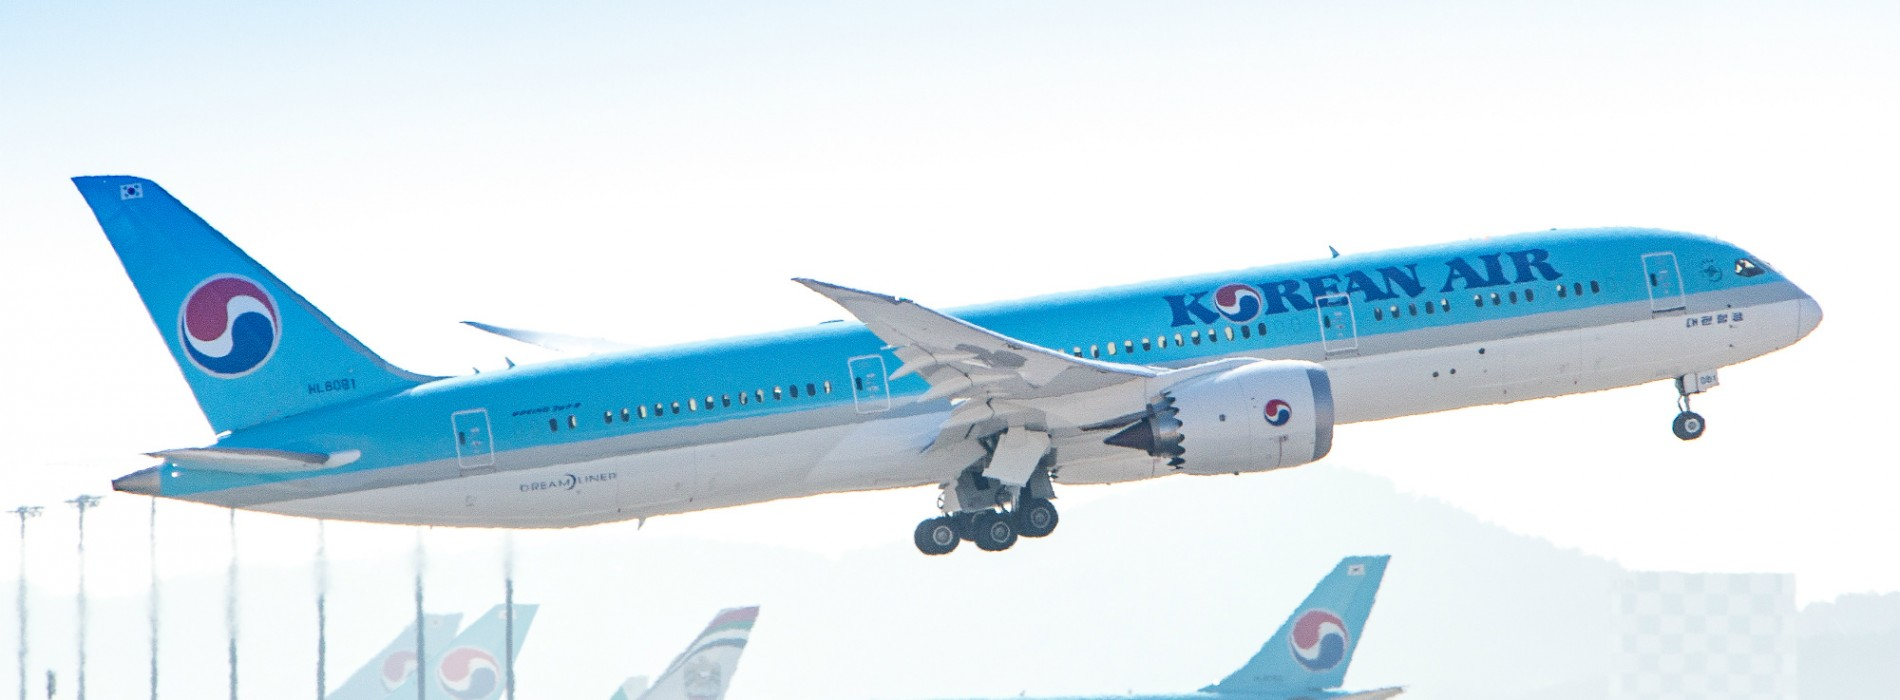 The UN Conference on the Aviation Industry' to be held in Korea